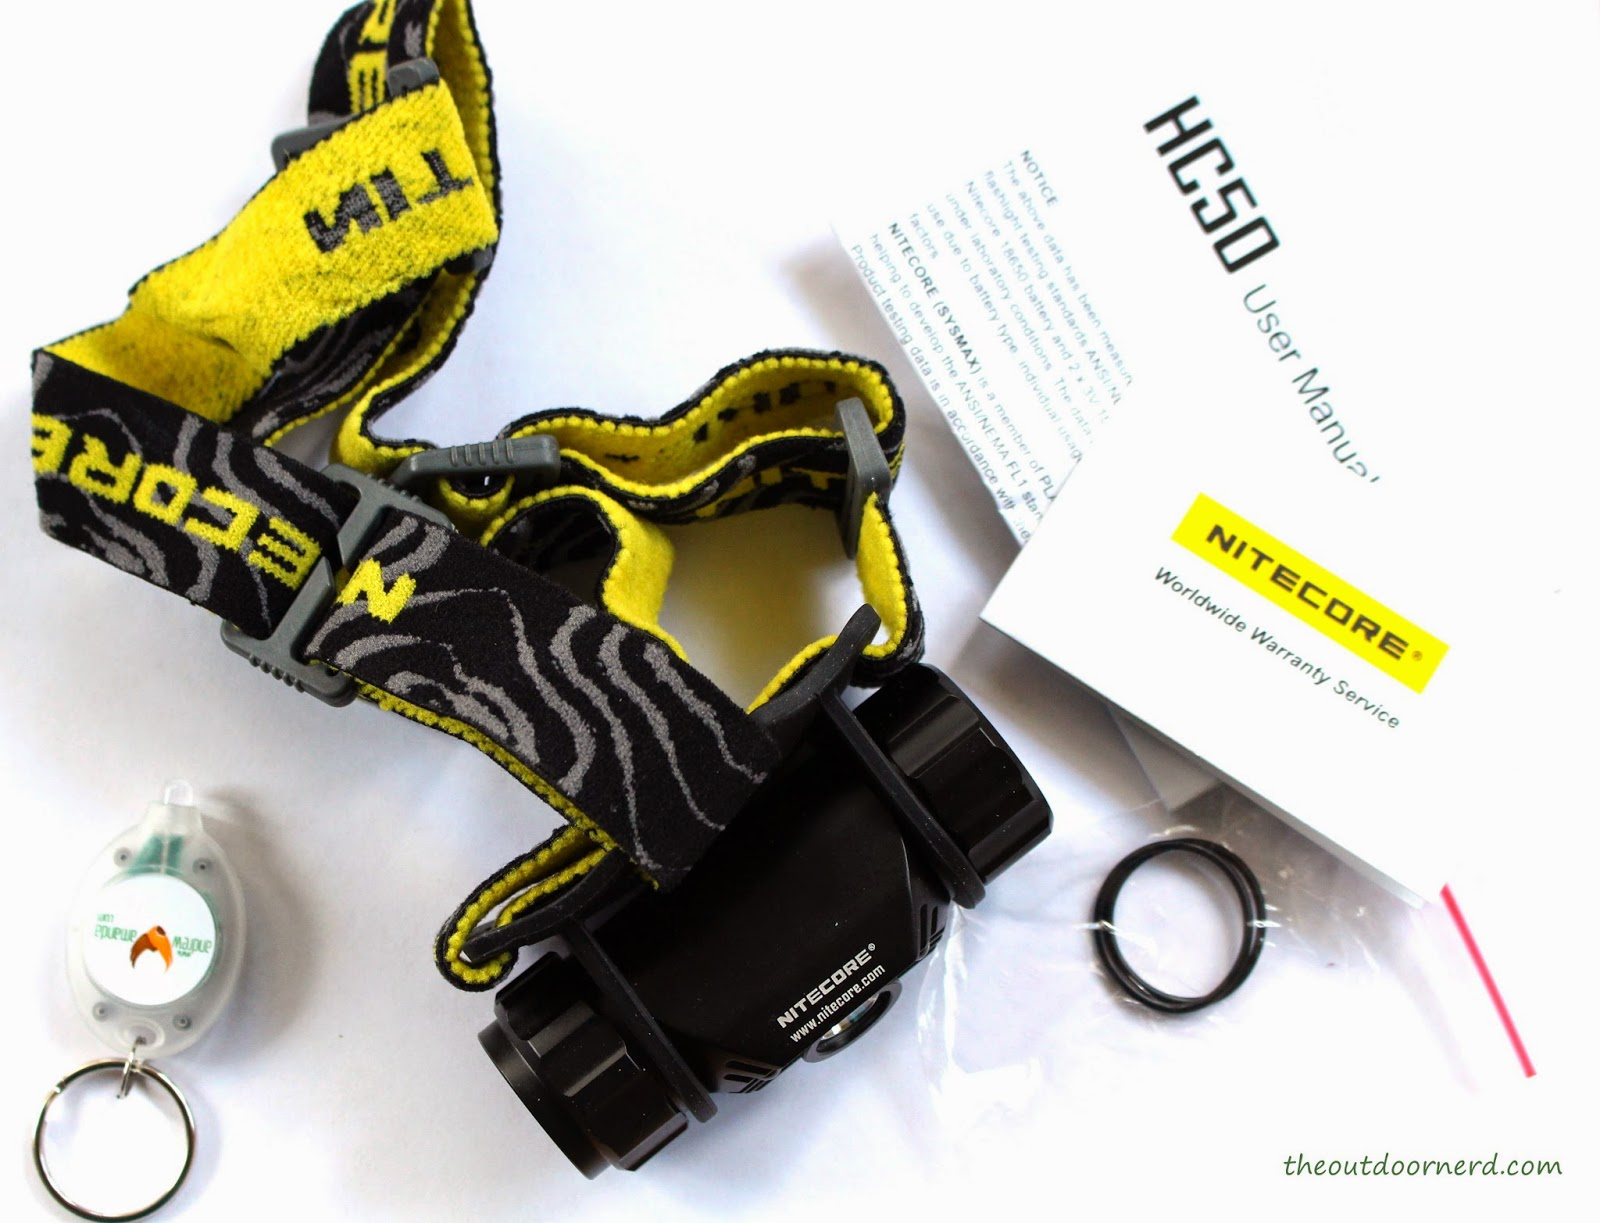 Nitecore HC50 Headlamp Unboxed